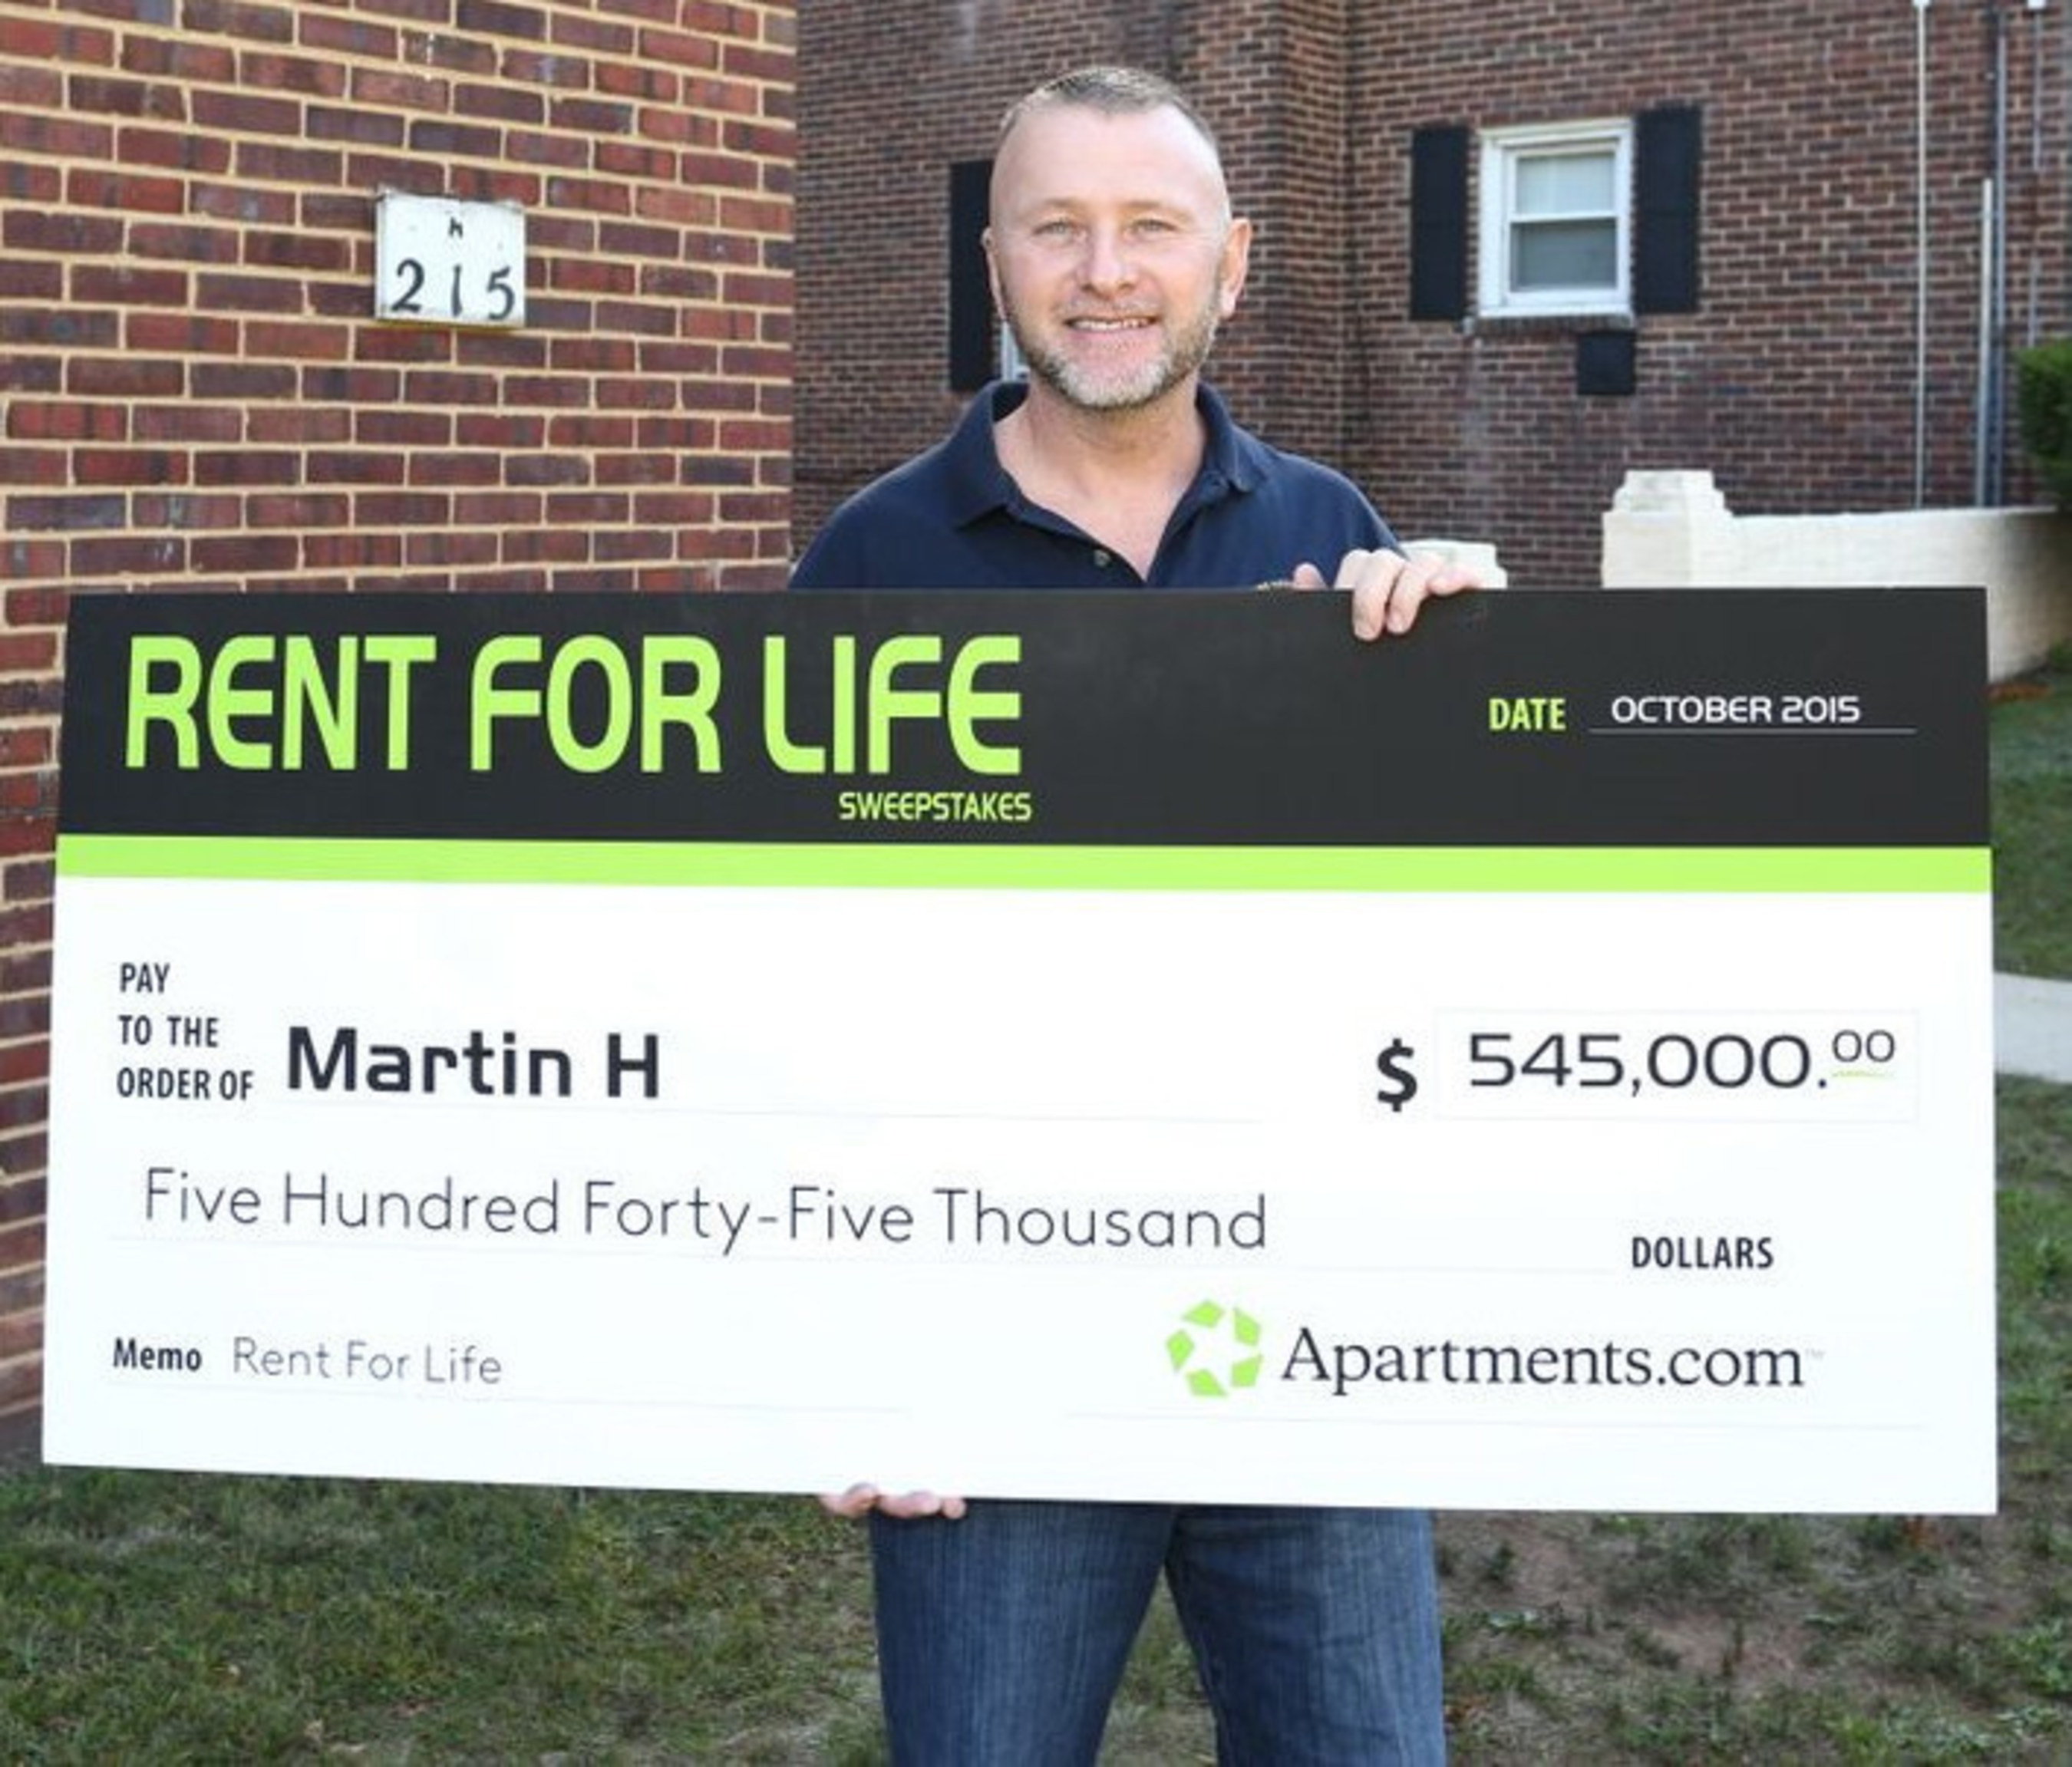 "Apartments.com named Martin Hudak of Woodbridge, N.J., the winner of its ""Rent for Life"" sweepstakes today, presenting the lucky renter with a check for $545,000 in recognition of his helpful apartment review. A utility contractor, engineer and New Jersey native, Hudak was randomly chosen from a group of more than 155,000 entrants - each of whom submitted a review of his or her apartment or community during the 12-week sweepstakes period."